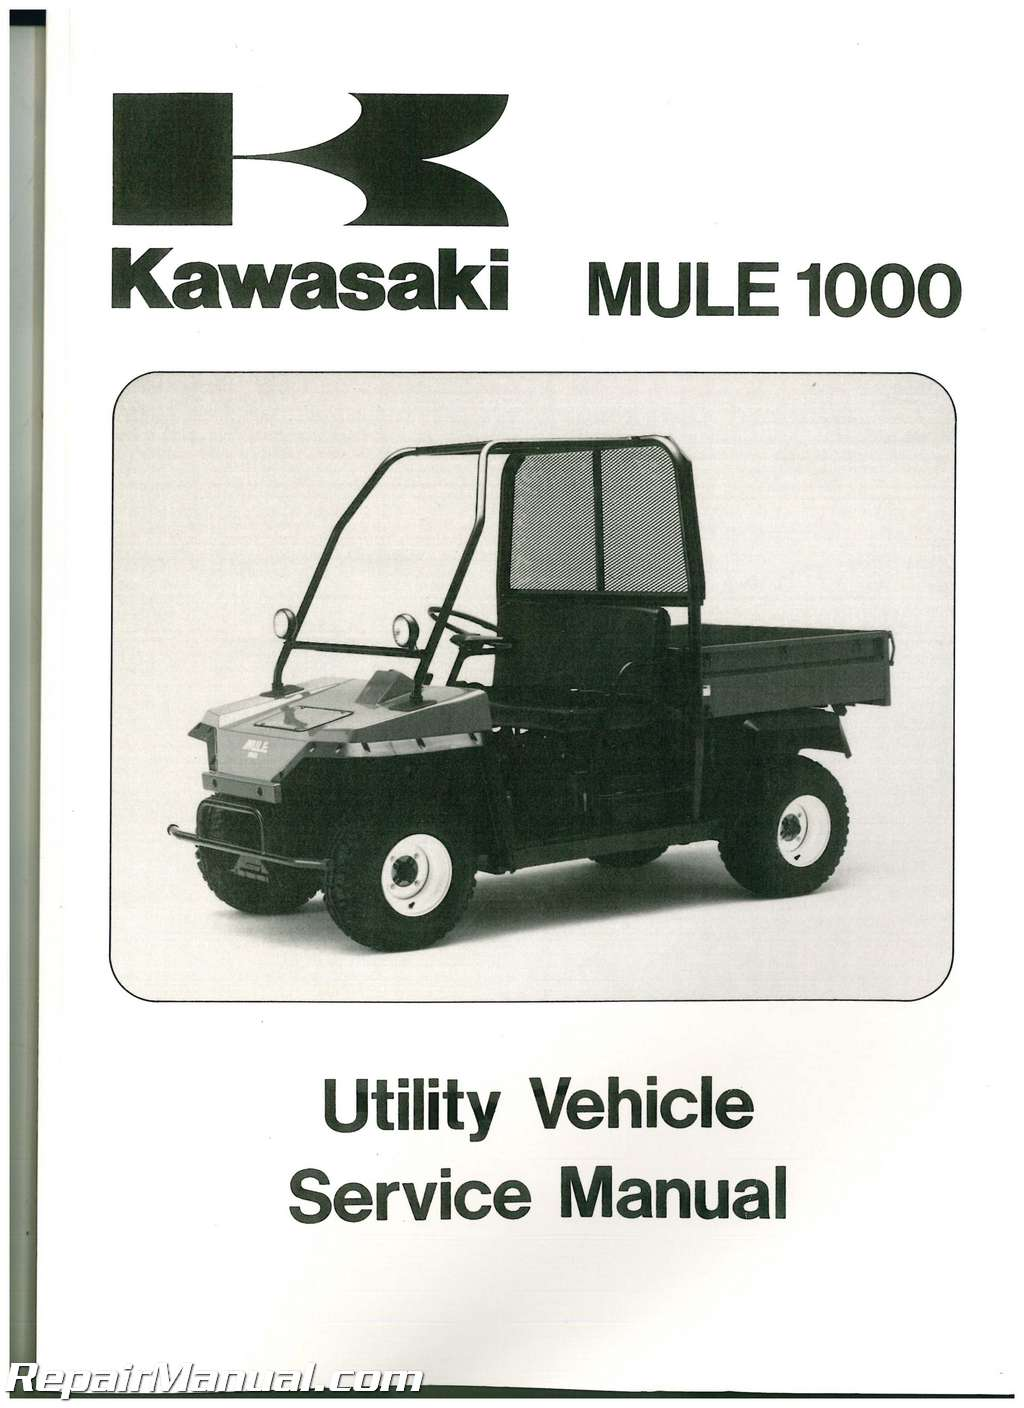 kawasaki motorcycle manuals page 83 of 89 repair manuals online rh  repairmanual com Kawasaki Mule 3010 Kawasaki Mule 2510